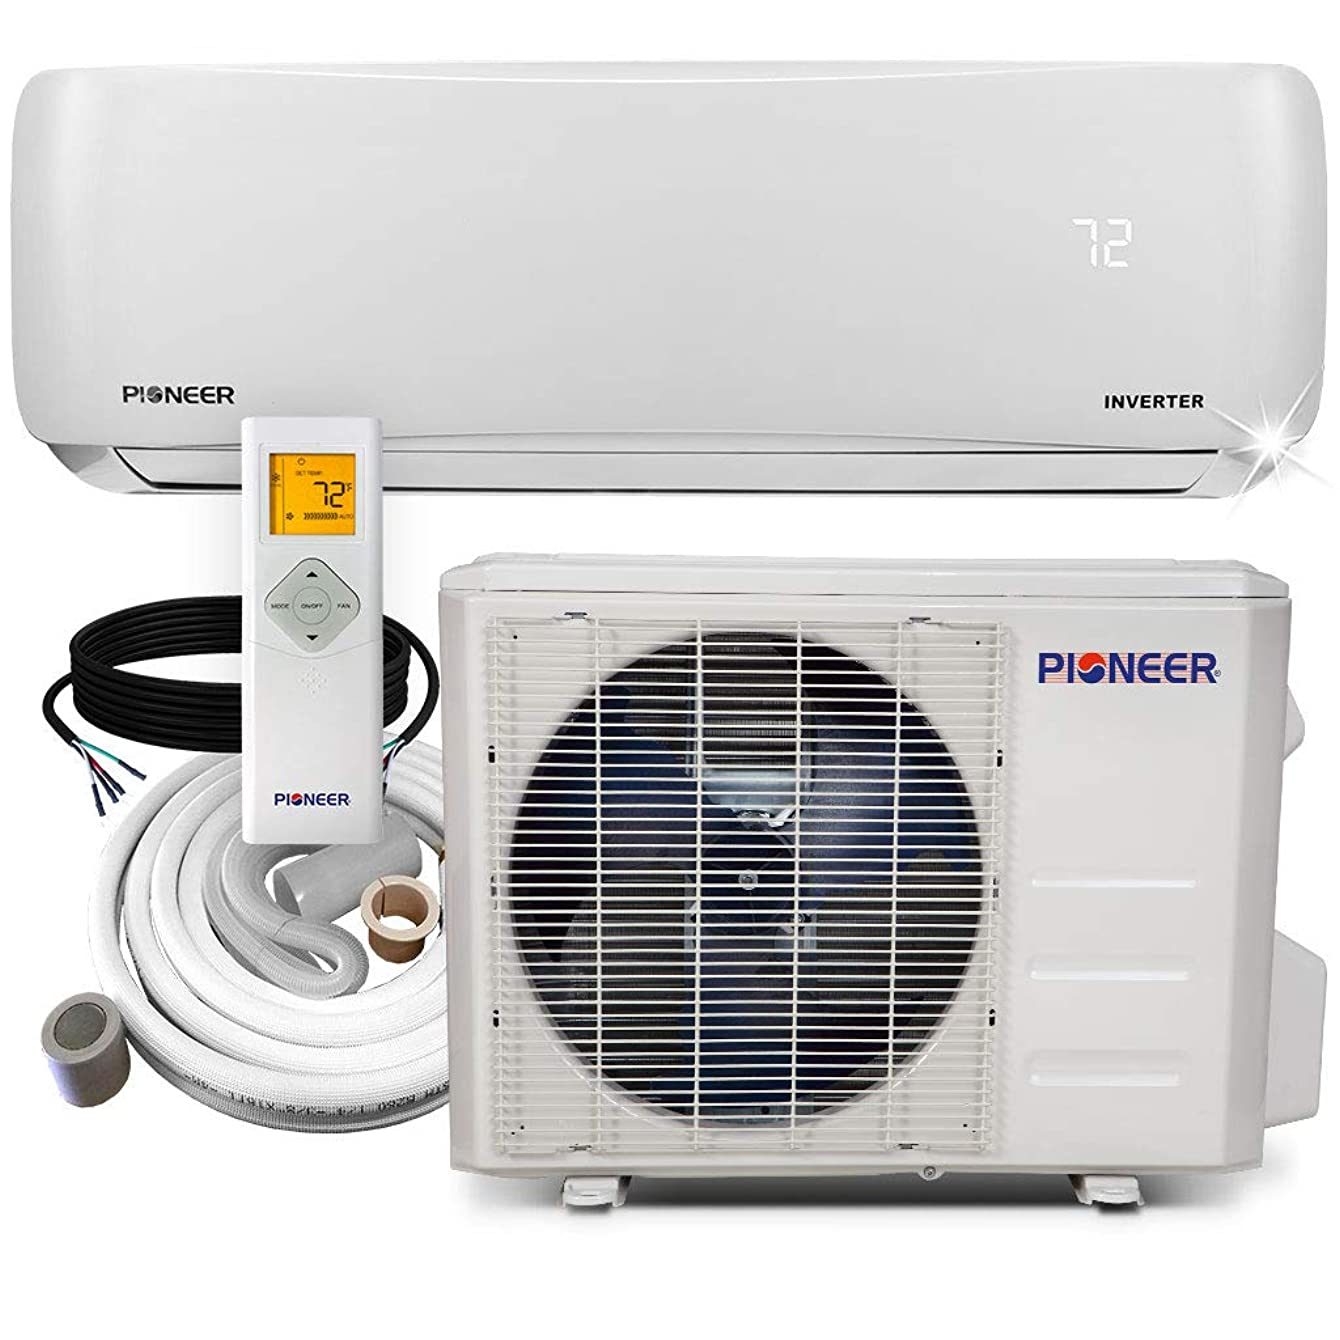 PIONEER Air Conditioner WYS018GMFI22RL Mini Split Heat Pump, 18000 BTU-208/230 V tnpndobuycwwv86